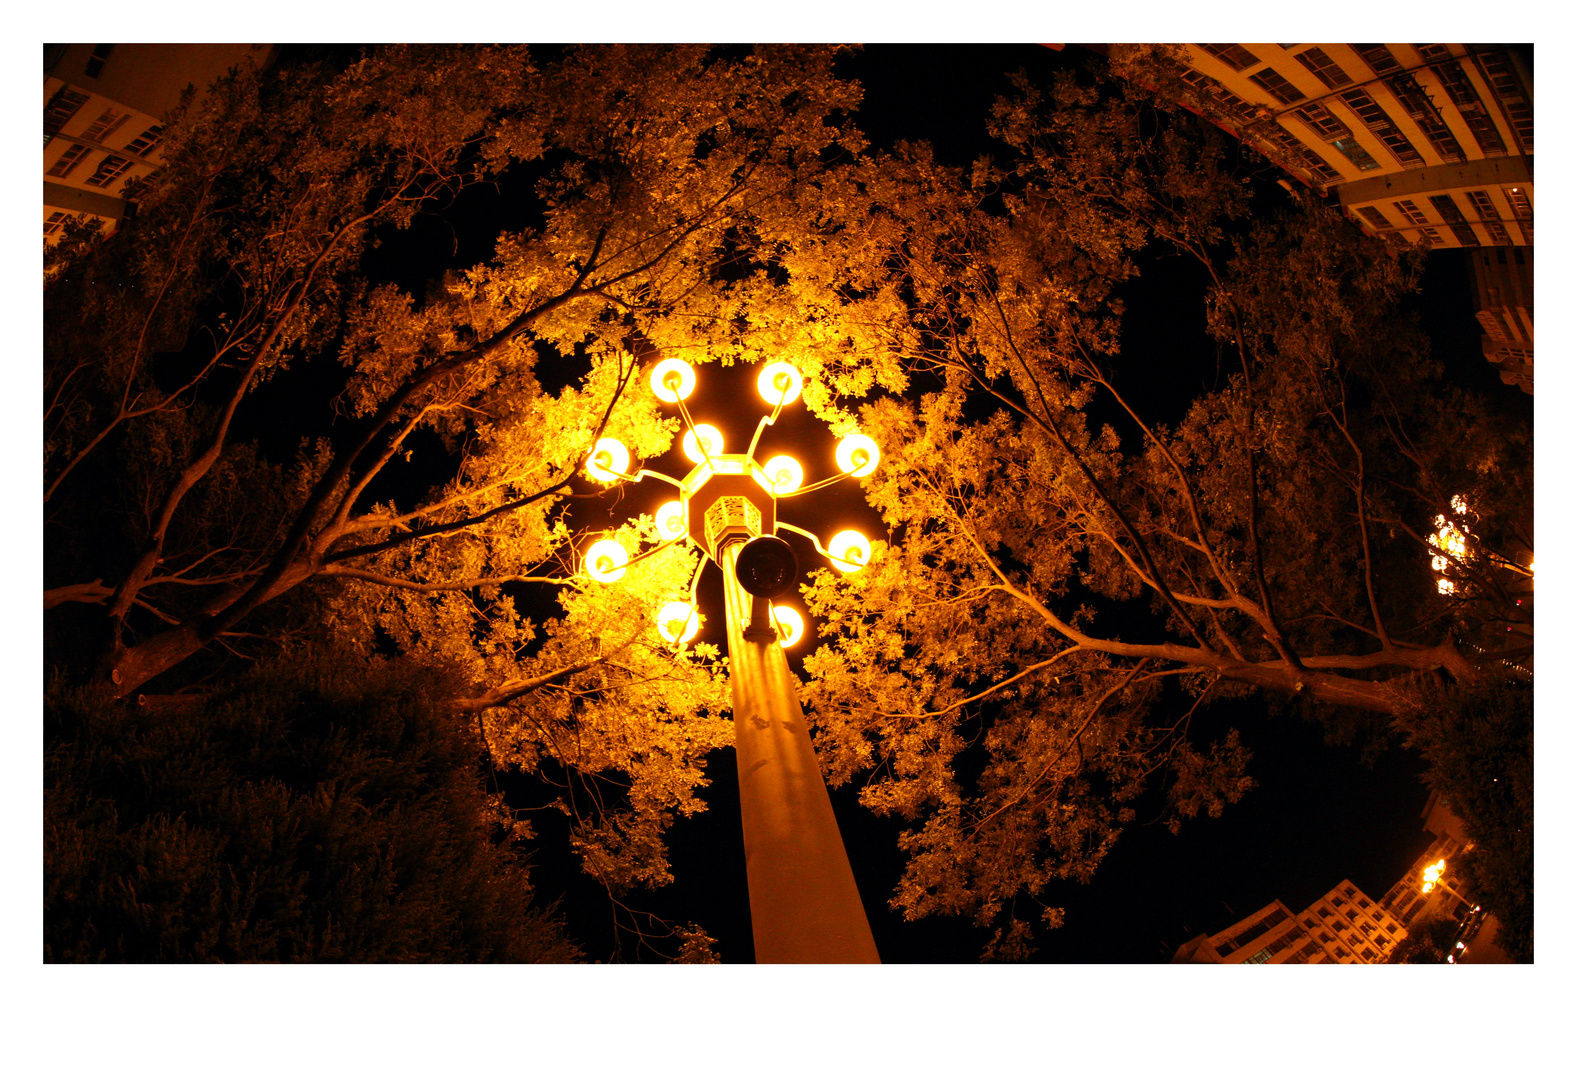 Street Lights in the Tree